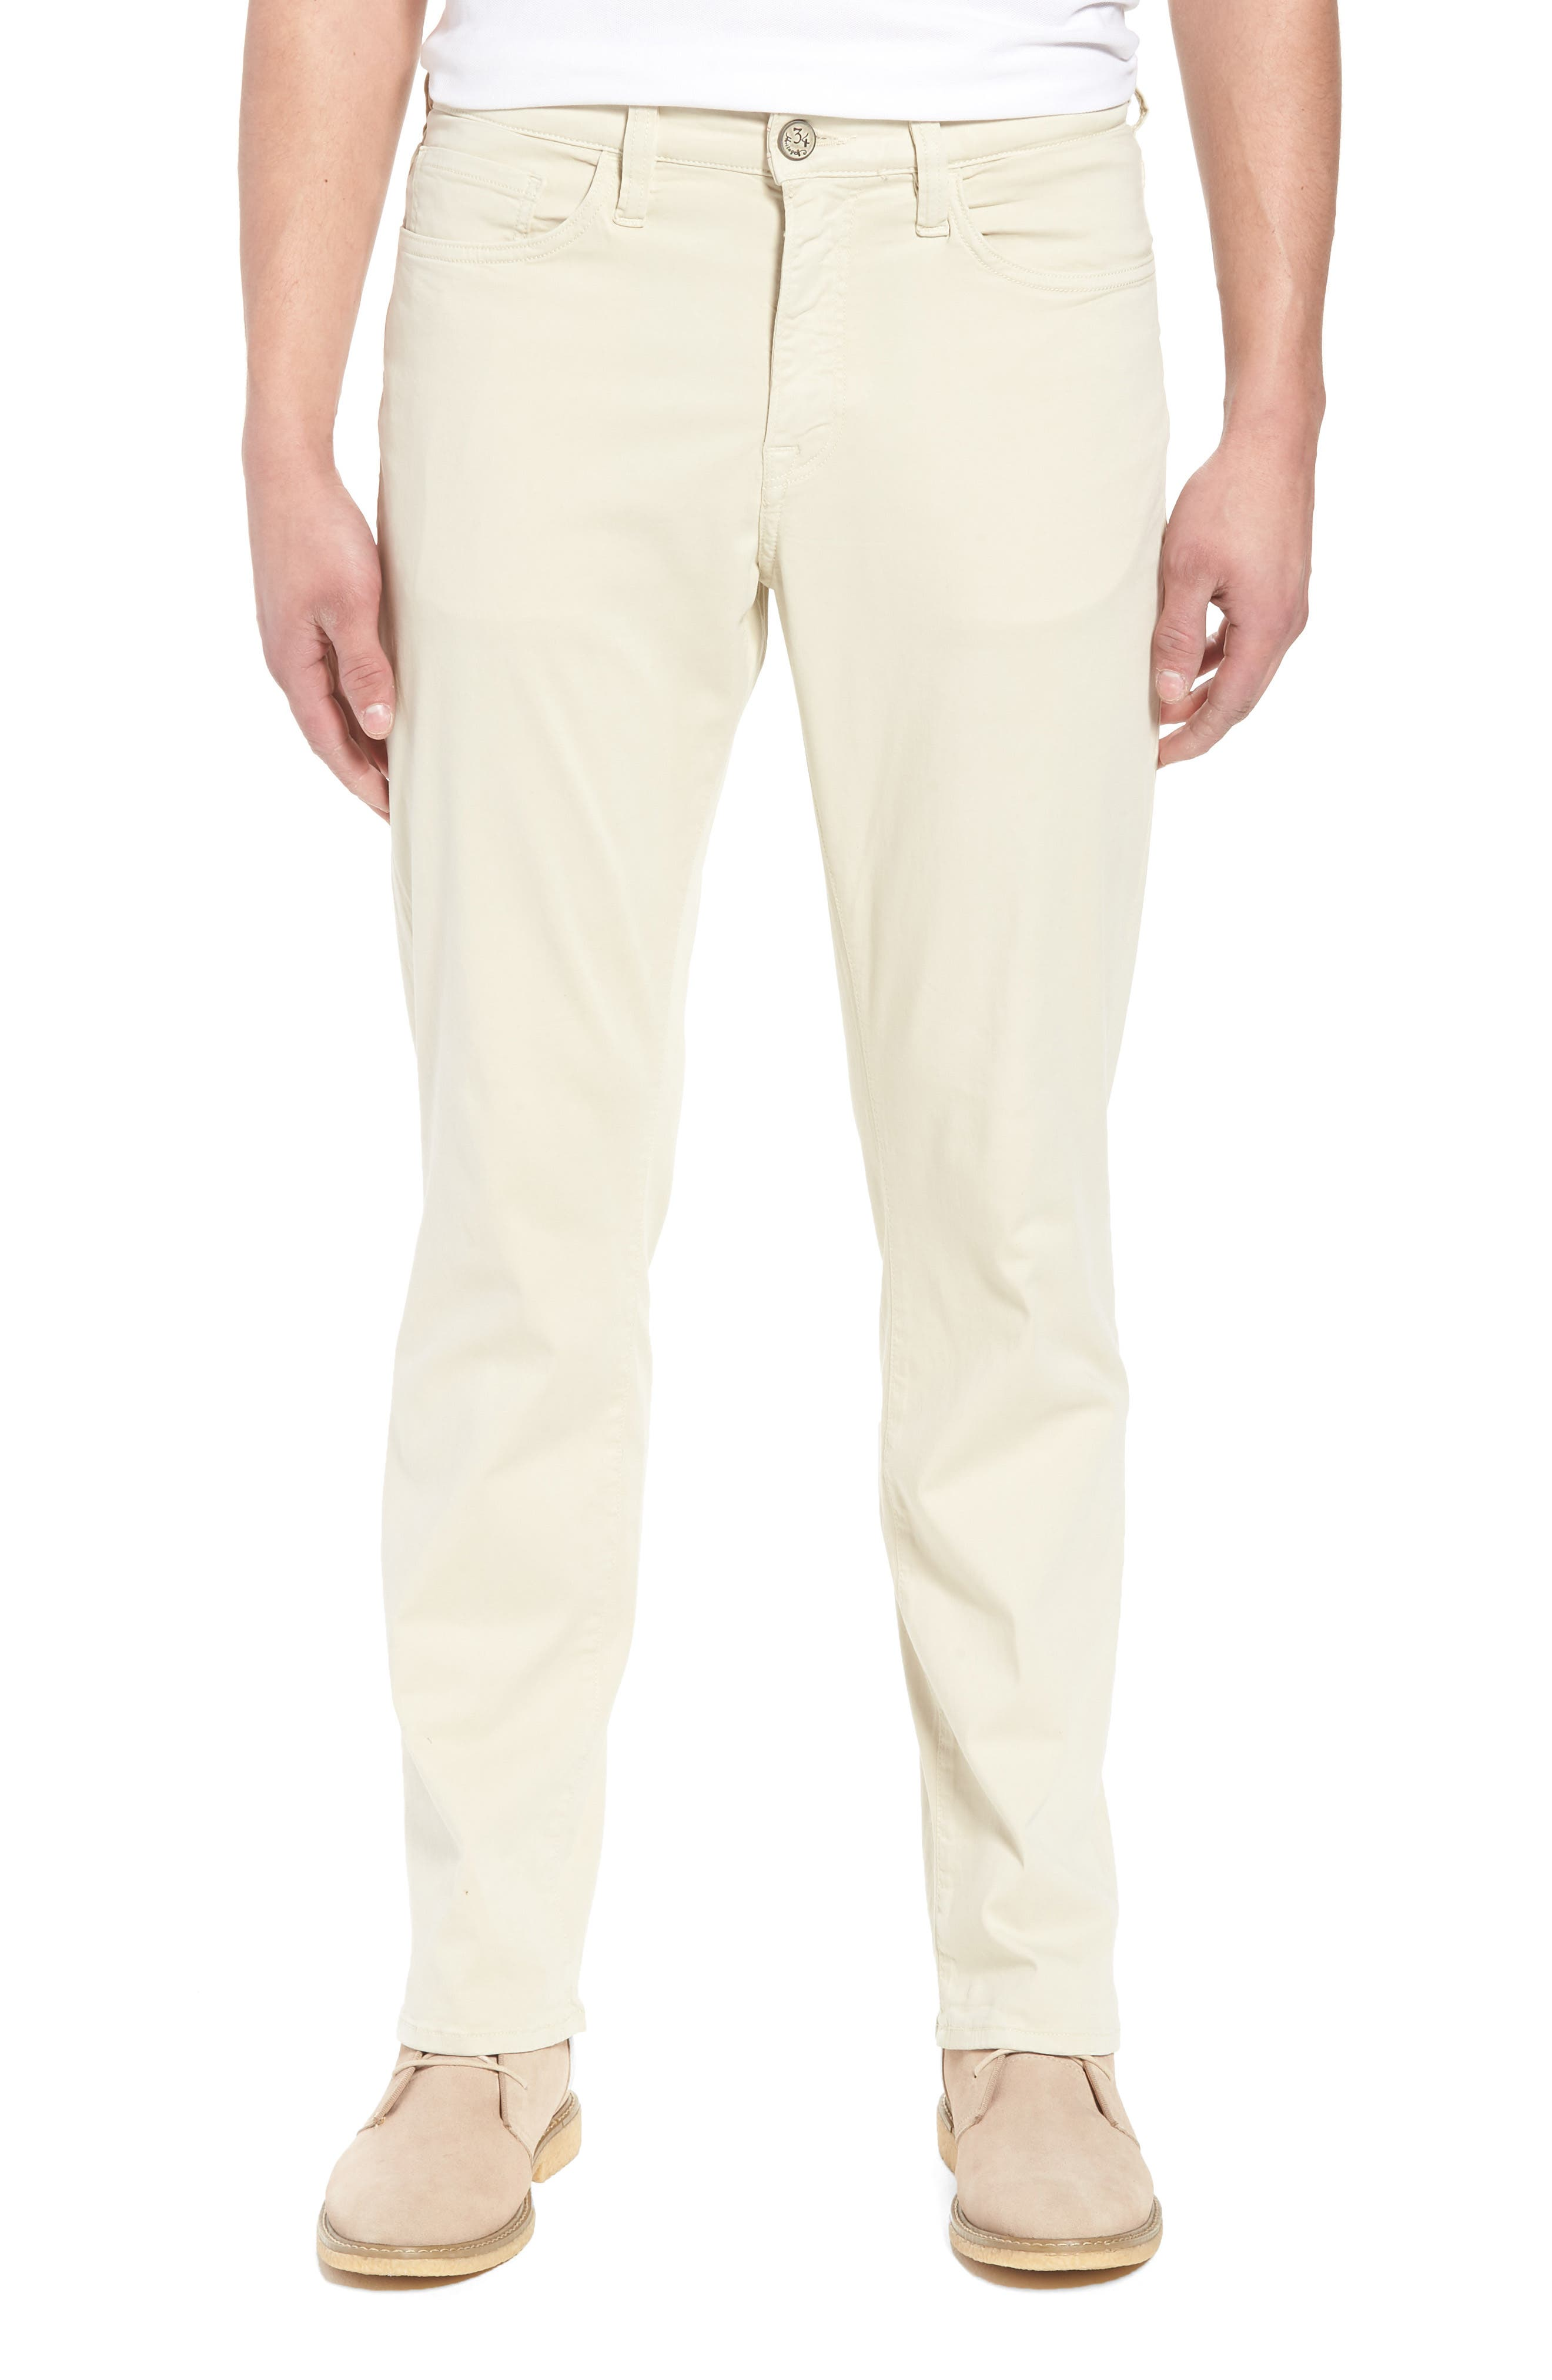 Charisma Relaxed Fit Jeans,                             Main thumbnail 1, color,                             Bone Twill